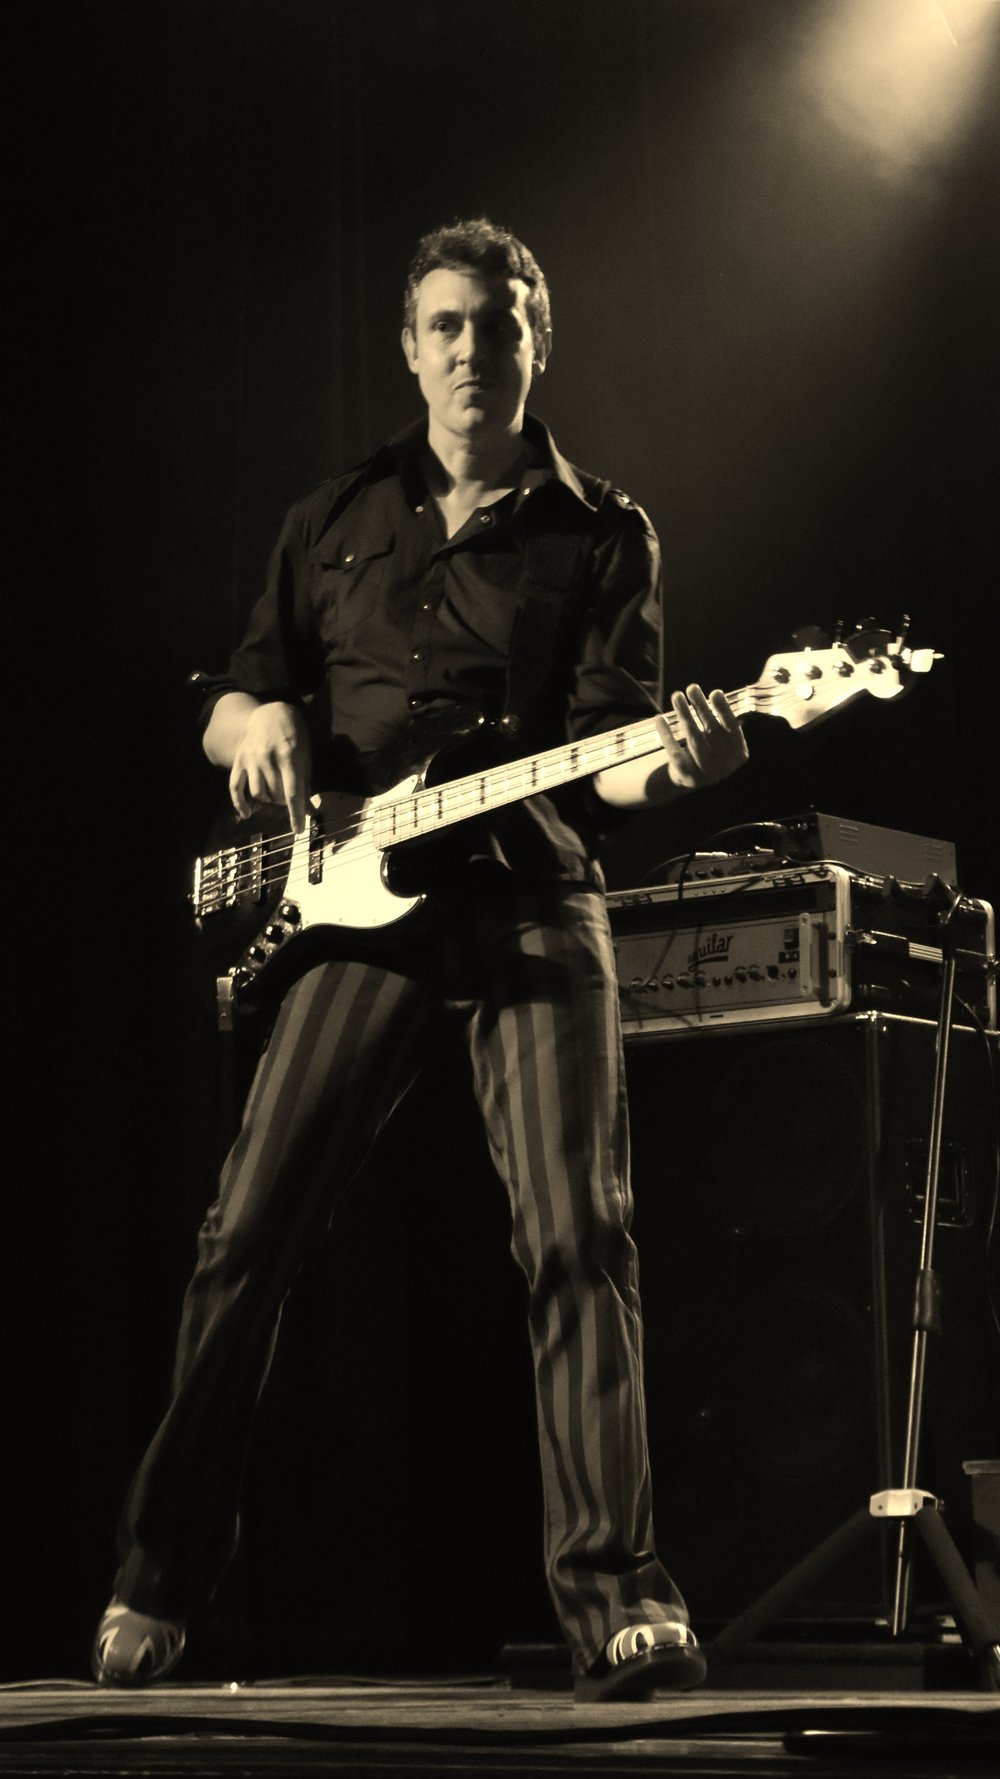 Steve Tilling - lead vocals/guitar